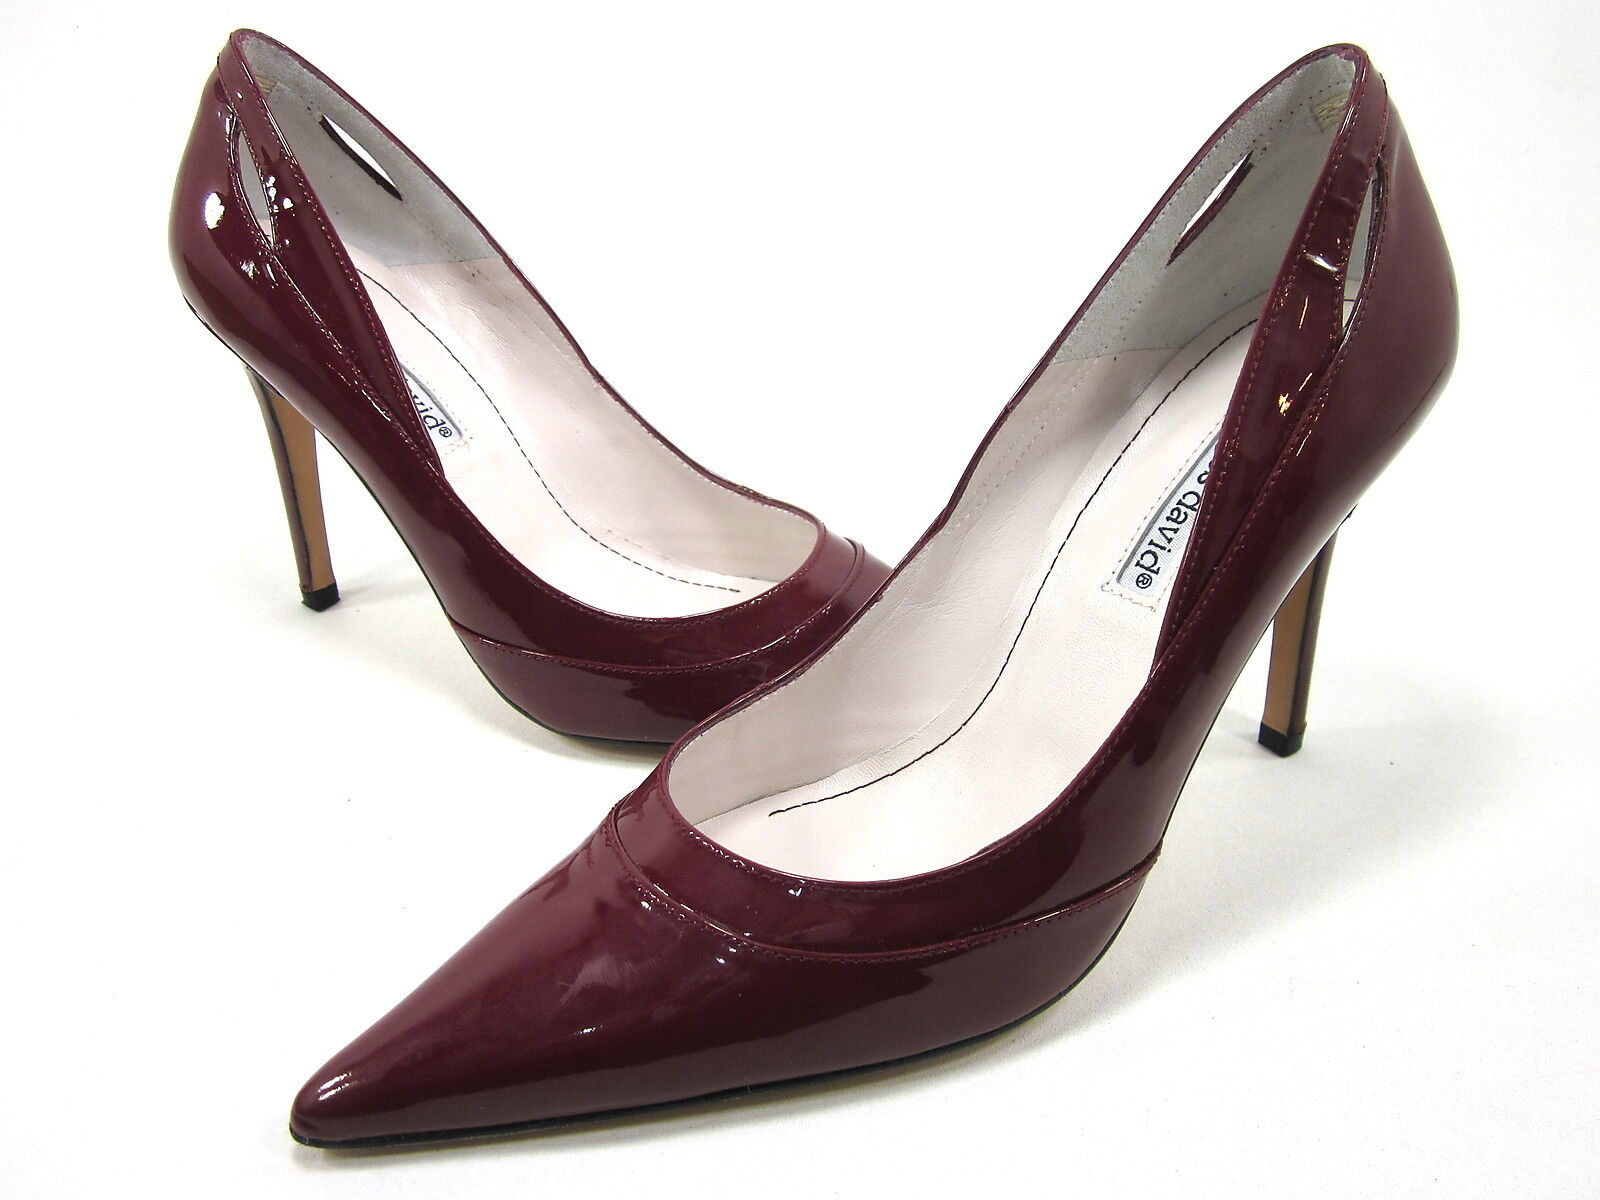 CHARLES DAVID, LUXE PUMP, Donna, RED, US 9M, LEATHER, NEW WITHOUT THE BOX